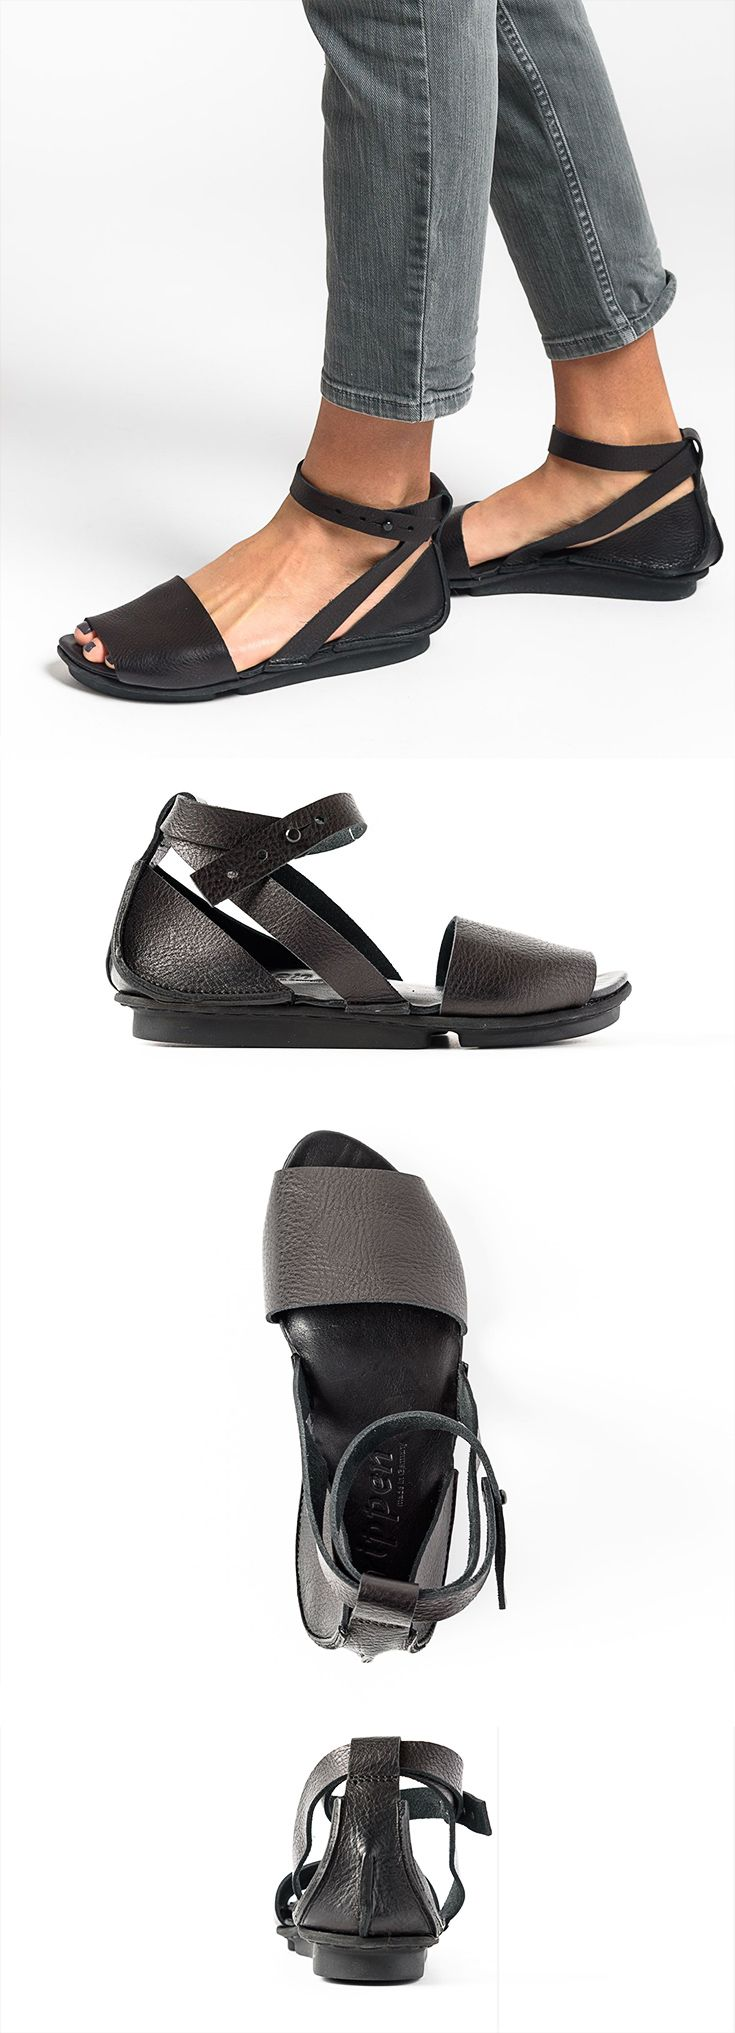 $325.00   Trippen Iris Sandal in Black   Trippen shoes are exceptional in design and committed to environmentally conscious production. Made from vegetable tanned leather and rubber soles for comfort. The black leather sandal is perfect for spring and summer. Sold online and in-store in Workshop in Santa Fe, New Mexico as the largest collection in the USA.